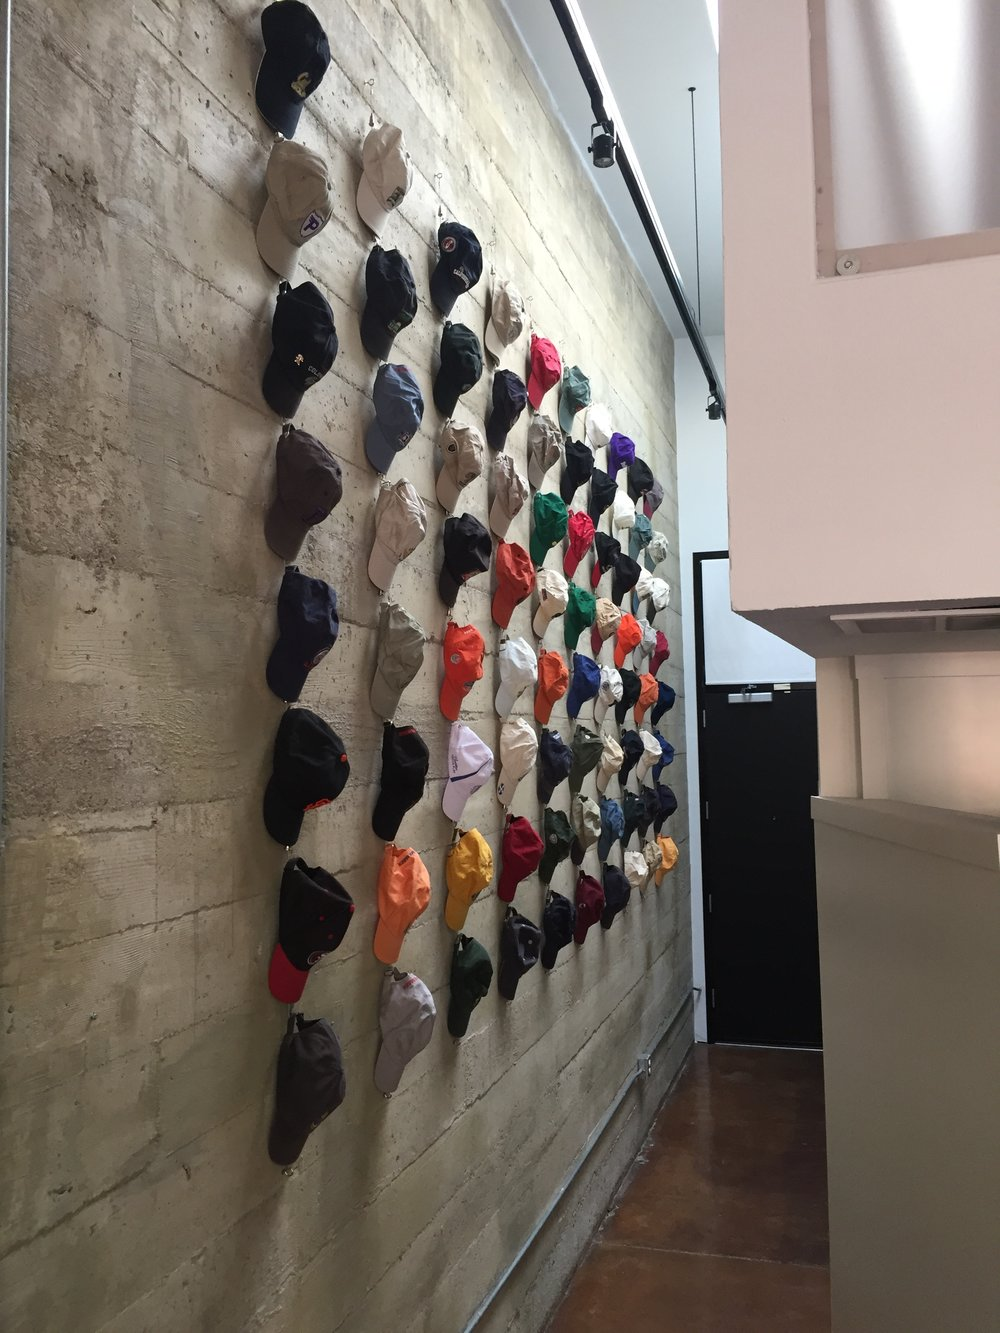 80 hats on a concrete wall